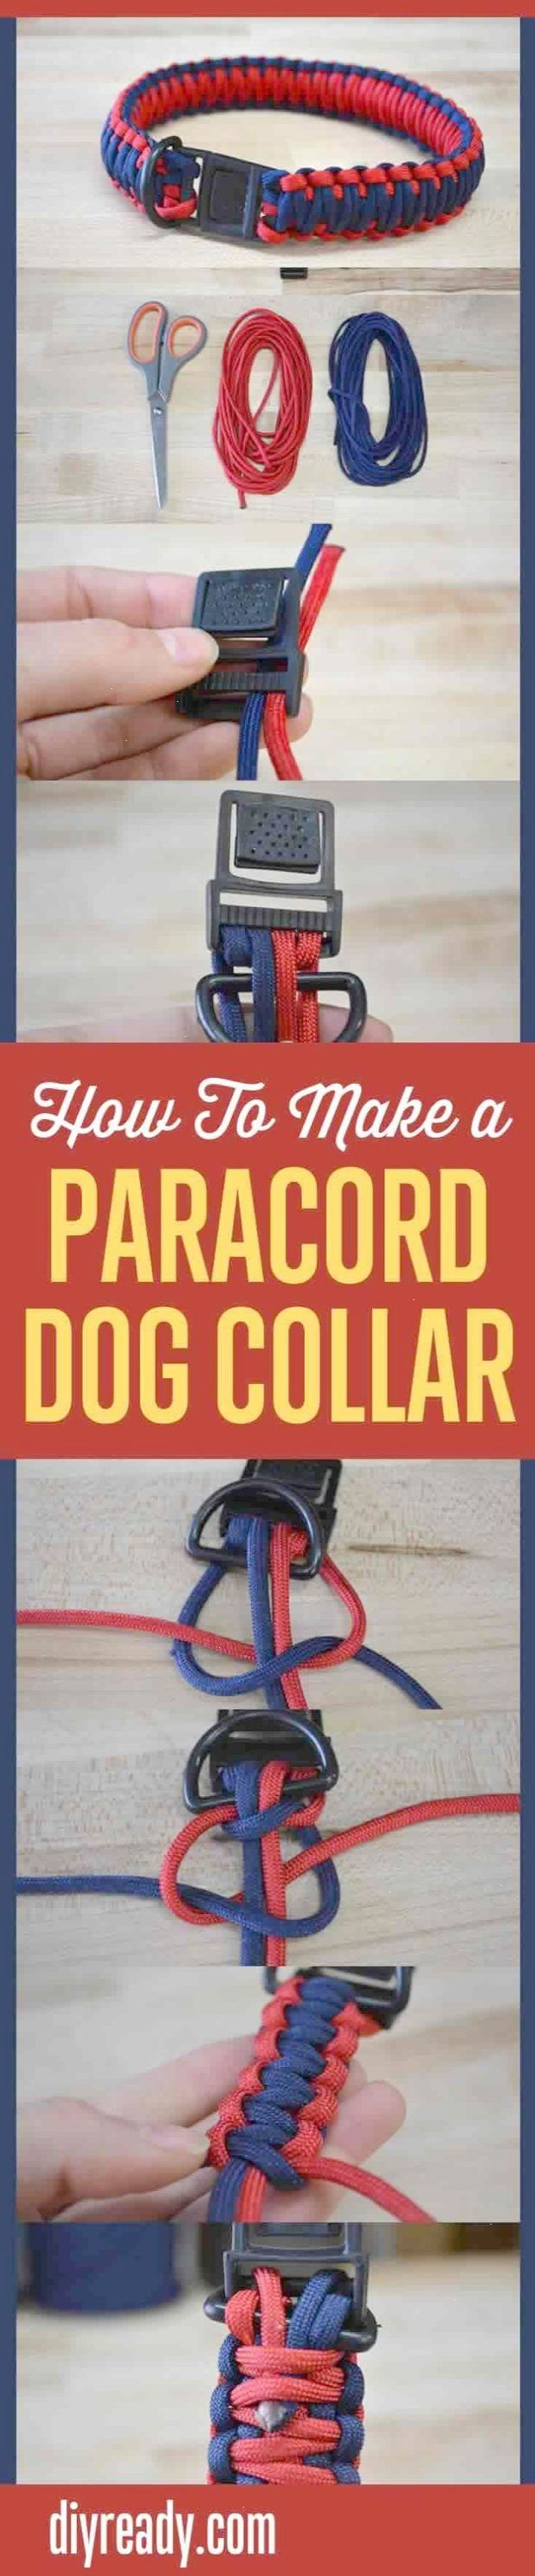 best dog images on pinterest dog accessories pets and dog leash